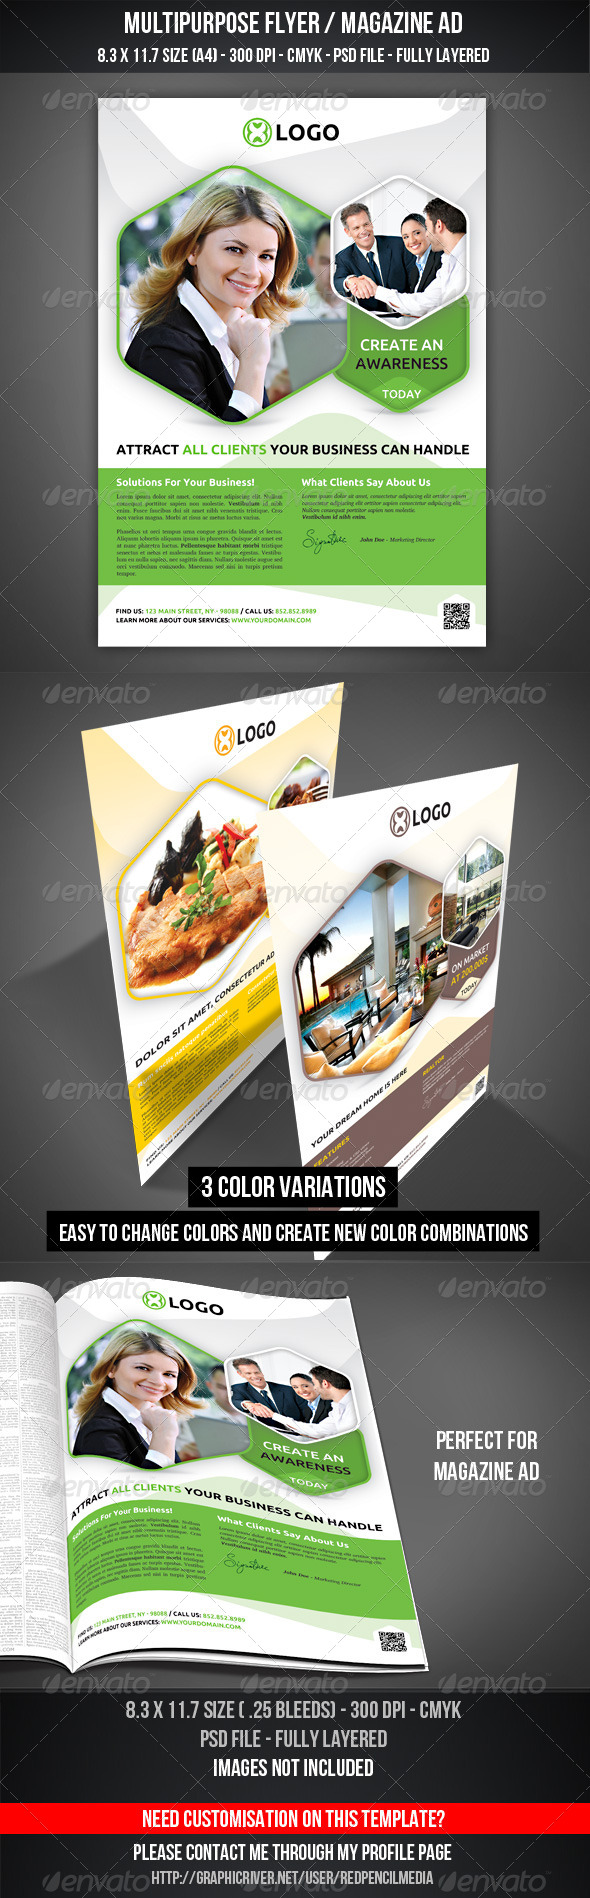 Multipurpose Flyer / Magazine AD - Flyers Print Templates